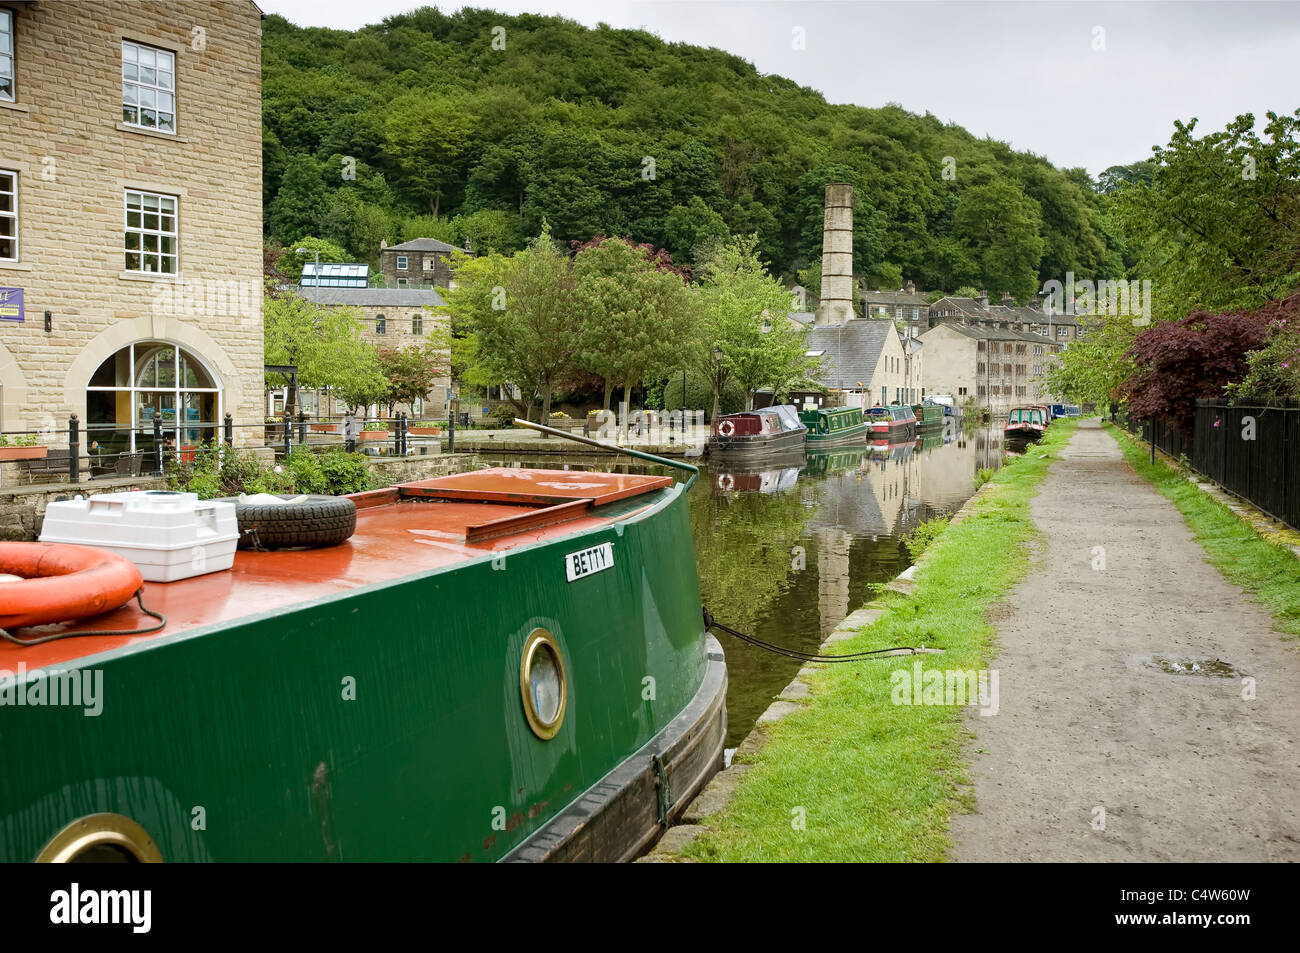 narrowboats at there moorings in hebden bridge - Stock Image